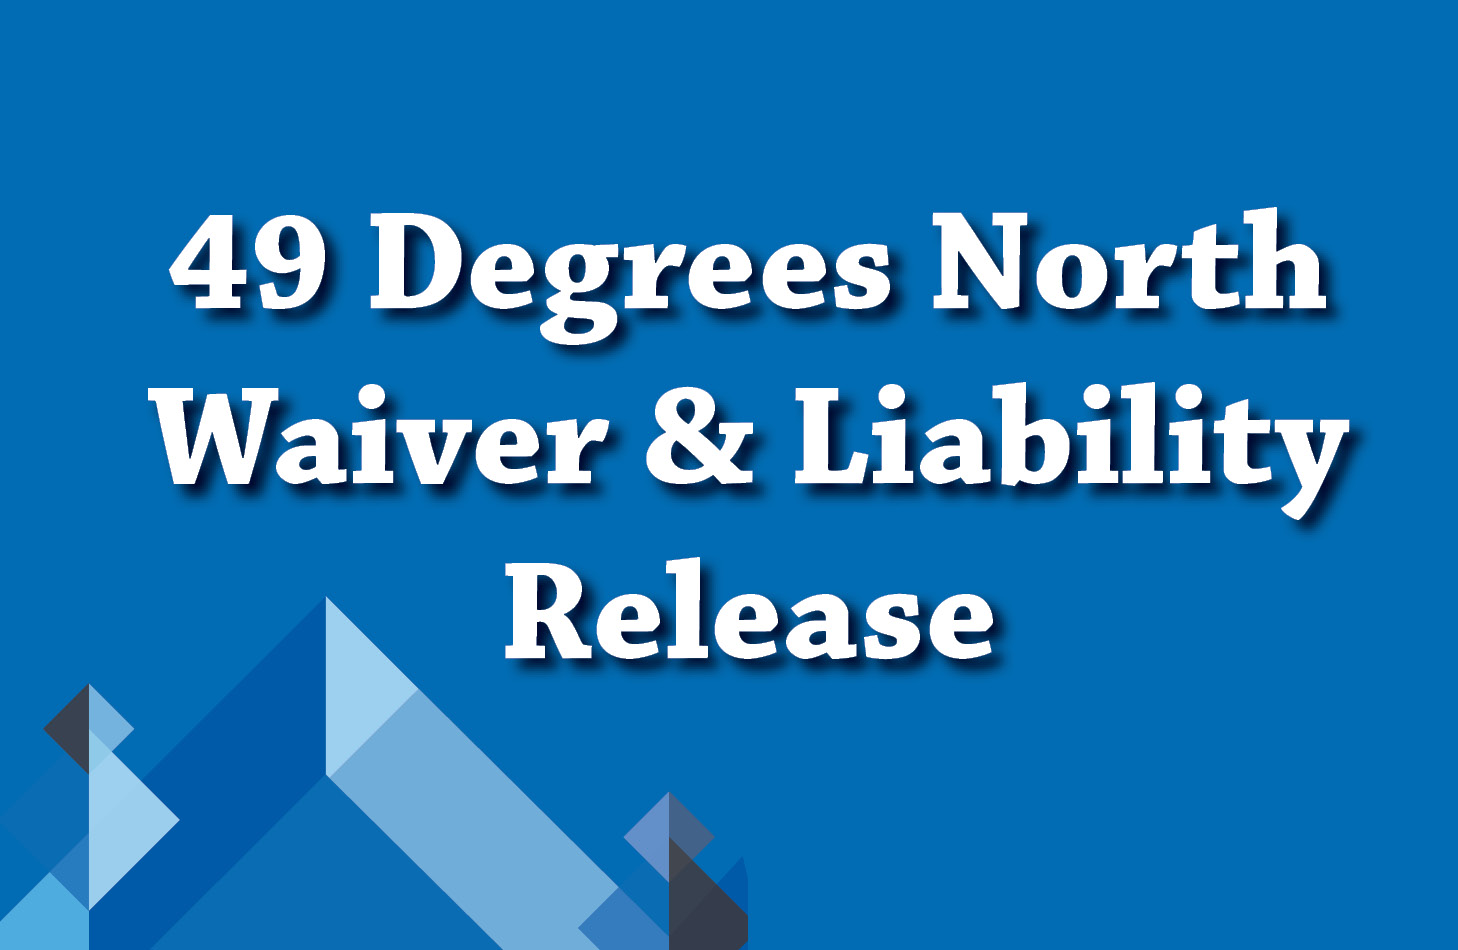 Waiver and Liability Release